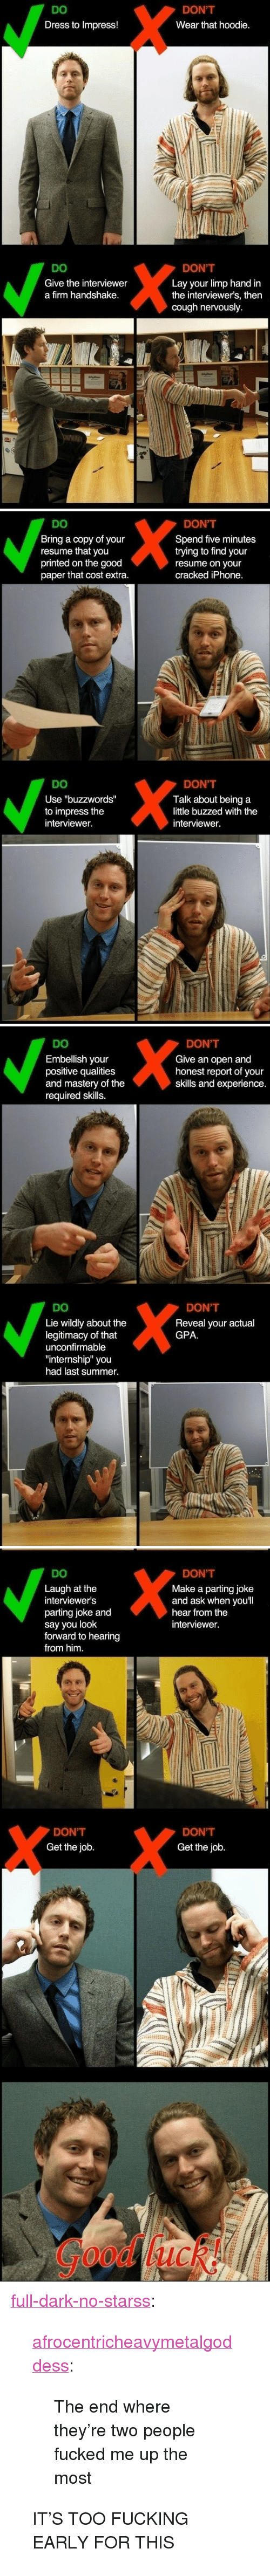 """Fucking, Iphone, and Target: DO  Dress to Impress!  DON'T  Wear that hoodie.  DO  Give the interviewer  a firm handshake.  DON'T  Lay your limp hand in  the interviewer's, then  cough nervously.   DO  Bring a copy of your  resume that you  printed on the good  paper that cost extra.  DON'T  Spend five minutes  trying to find your  resume on your  cracked iPhone.  DO  Use """"buzzwords""""  to impress the  DON'T  Talk about being a  little buzzed with the  interviewer.  interviewer   DO  Embellish your  positive qualities  and mastery of the  required skills.  DON'T  Give an open and  honest report of your  skills and experience.  DO  DON'T  Reveal your actual  GPA  Lie wildly about the  legitimacy of that  unconfirmable  """"internship"""" you  had last summer.   DO  Laugh at the  interviewer's  parting joke and  say you look  forward to hearing  from him.  DON'T  Make a parting joke  and ask when youll  hear from the  interviewer.  DON'T  Get the job.  DON'T  Get the job  Good luck <p><a href=""""http://full-dark-no-starss.tumblr.com/post/162623133084/afrocentricheavymetalgoddess-the-end-where"""" class=""""tumblr_blog"""" target=""""_blank"""">full-dark-no-starss</a>:</p>  <blockquote><p><a href=""""http://afrocentricheavymetalgoddess.tumblr.com/post/109673387731/the-end-where-theyre-two-people-fucked-me-up-the"""" class=""""tumblr_blog"""" target=""""_blank"""">afrocentricheavymetalgoddess</a>:</p><blockquote><p>The end where they're two people fucked me up the most</p></blockquote> <p>IT'S TOO FUCKING EARLY FOR THIS</p></blockquote>"""